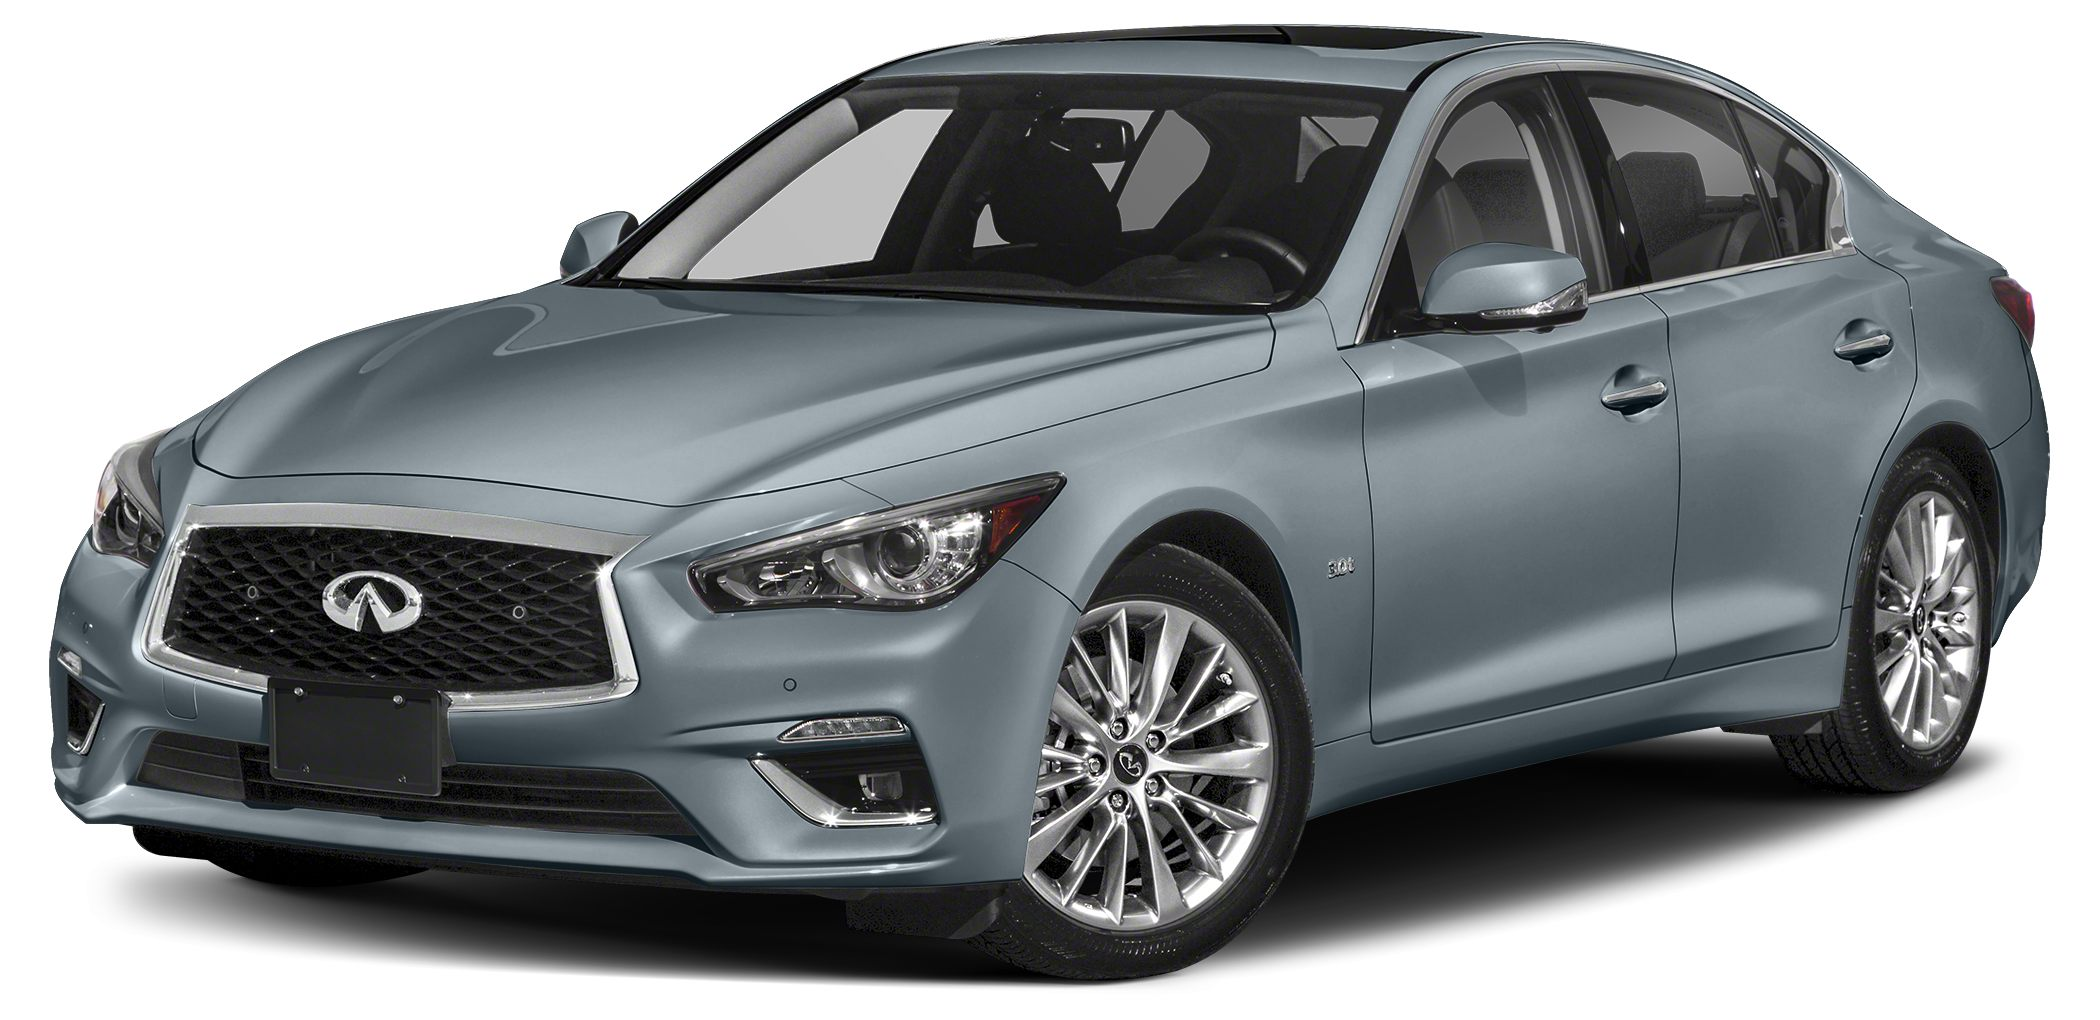 2018 INFINITI Q50 30T Luxe Optional equipment includes Cargo Package L95 Splash Guards Why